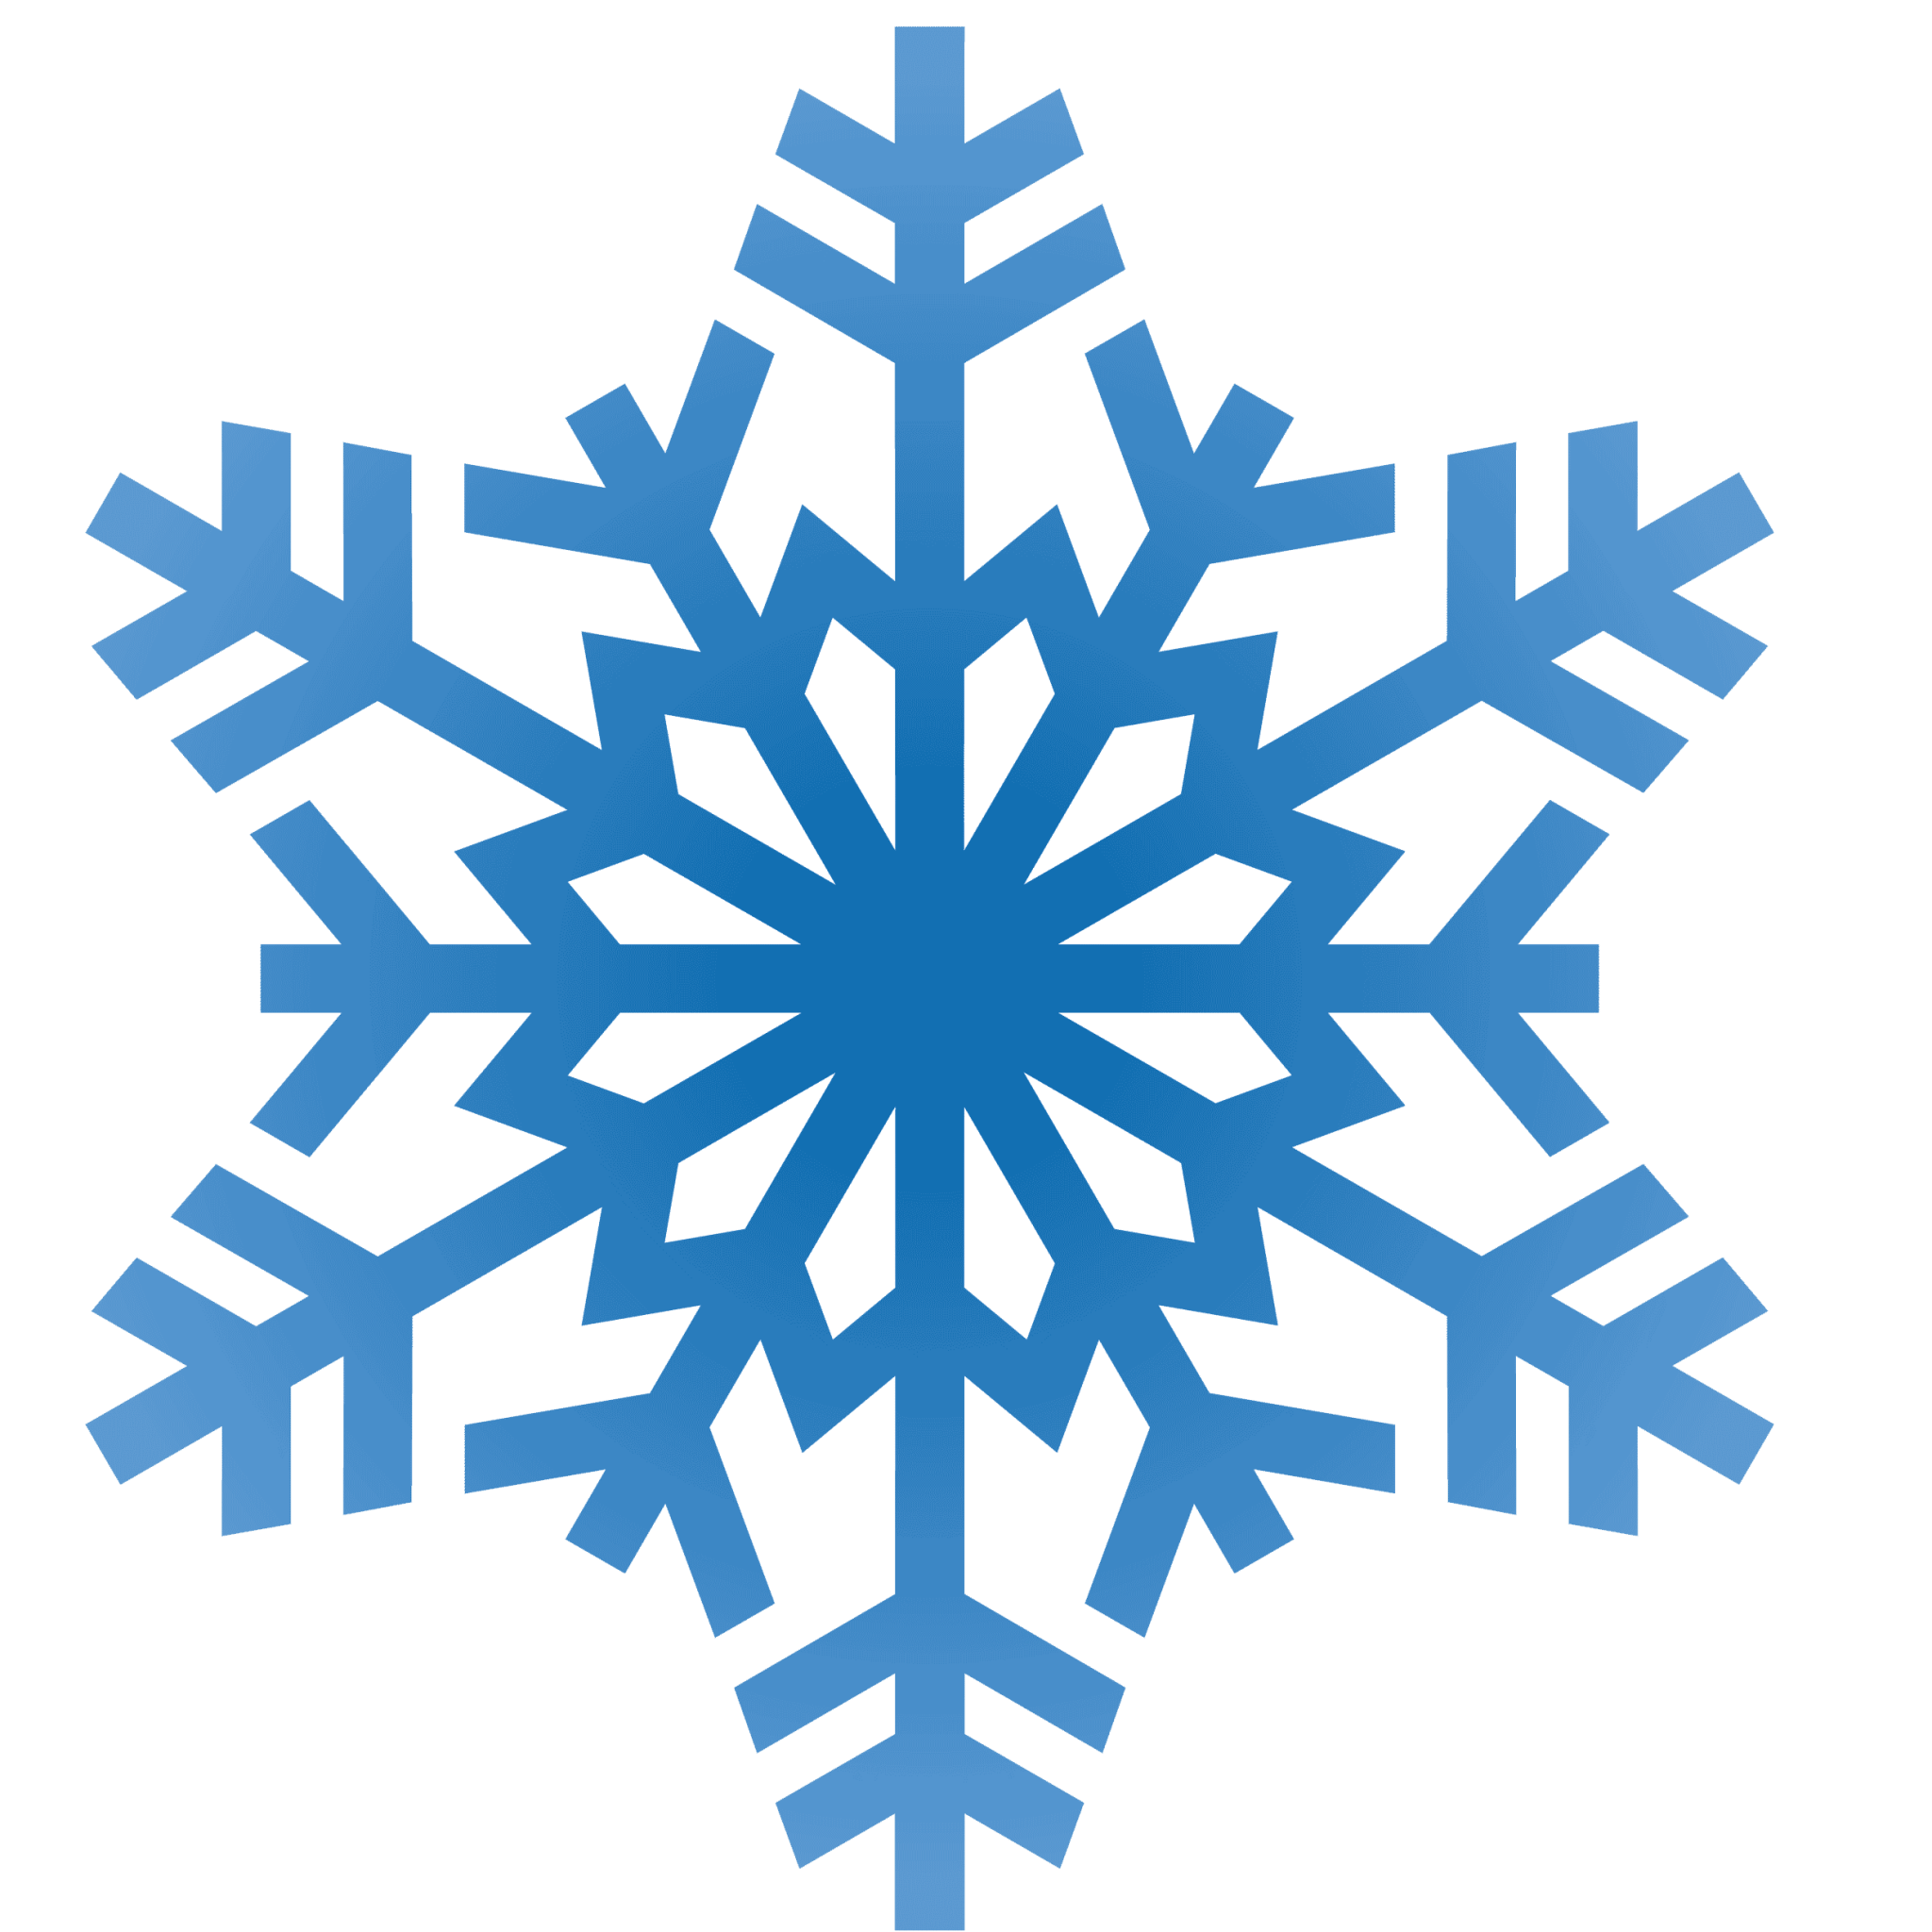 graphic royalty free library snowflake